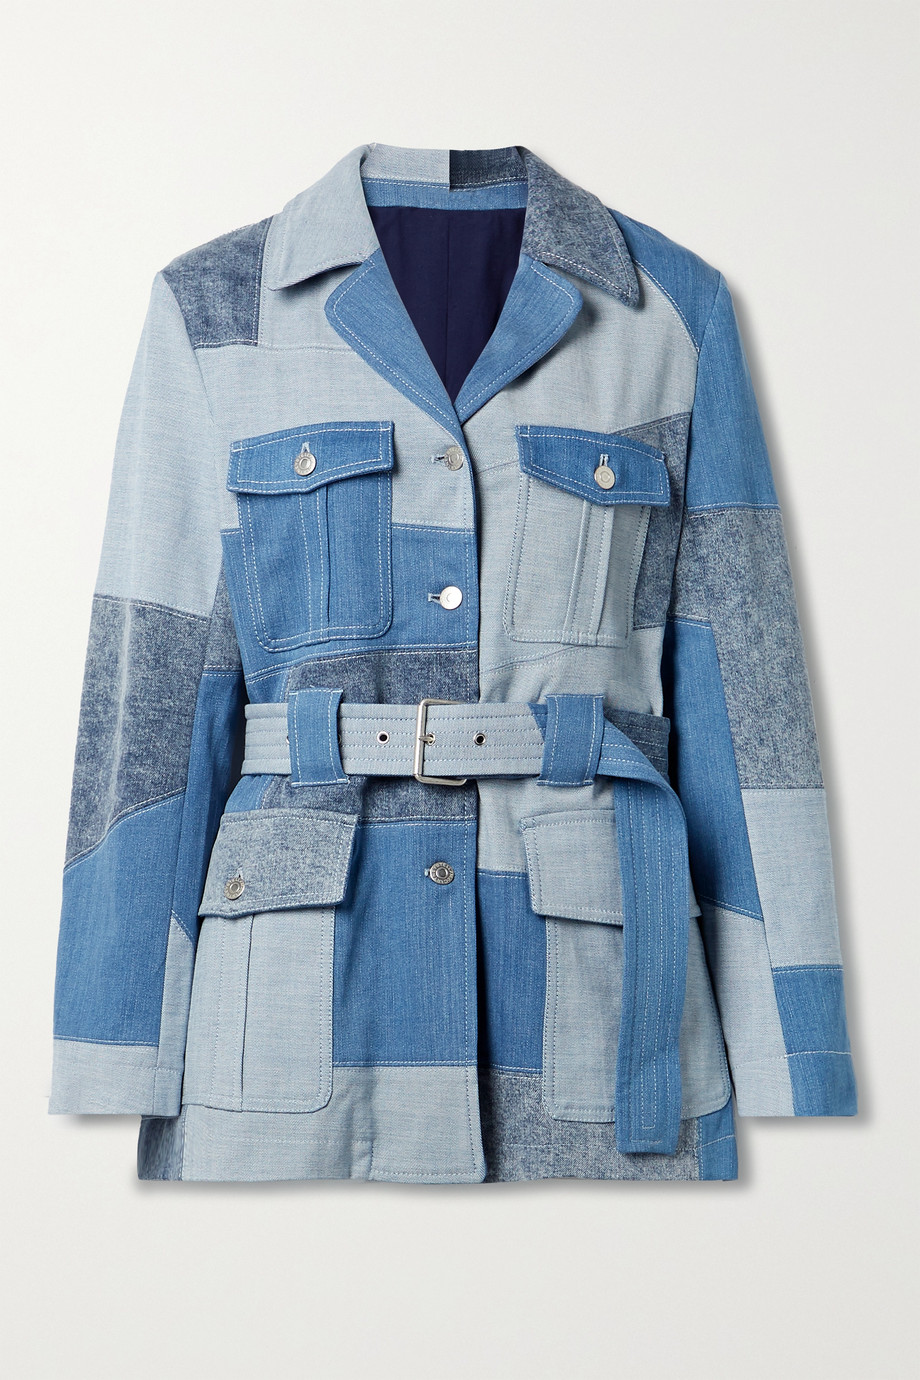 Stella McCartney + NET SUSTAIN belted patchwork organic denim jacket